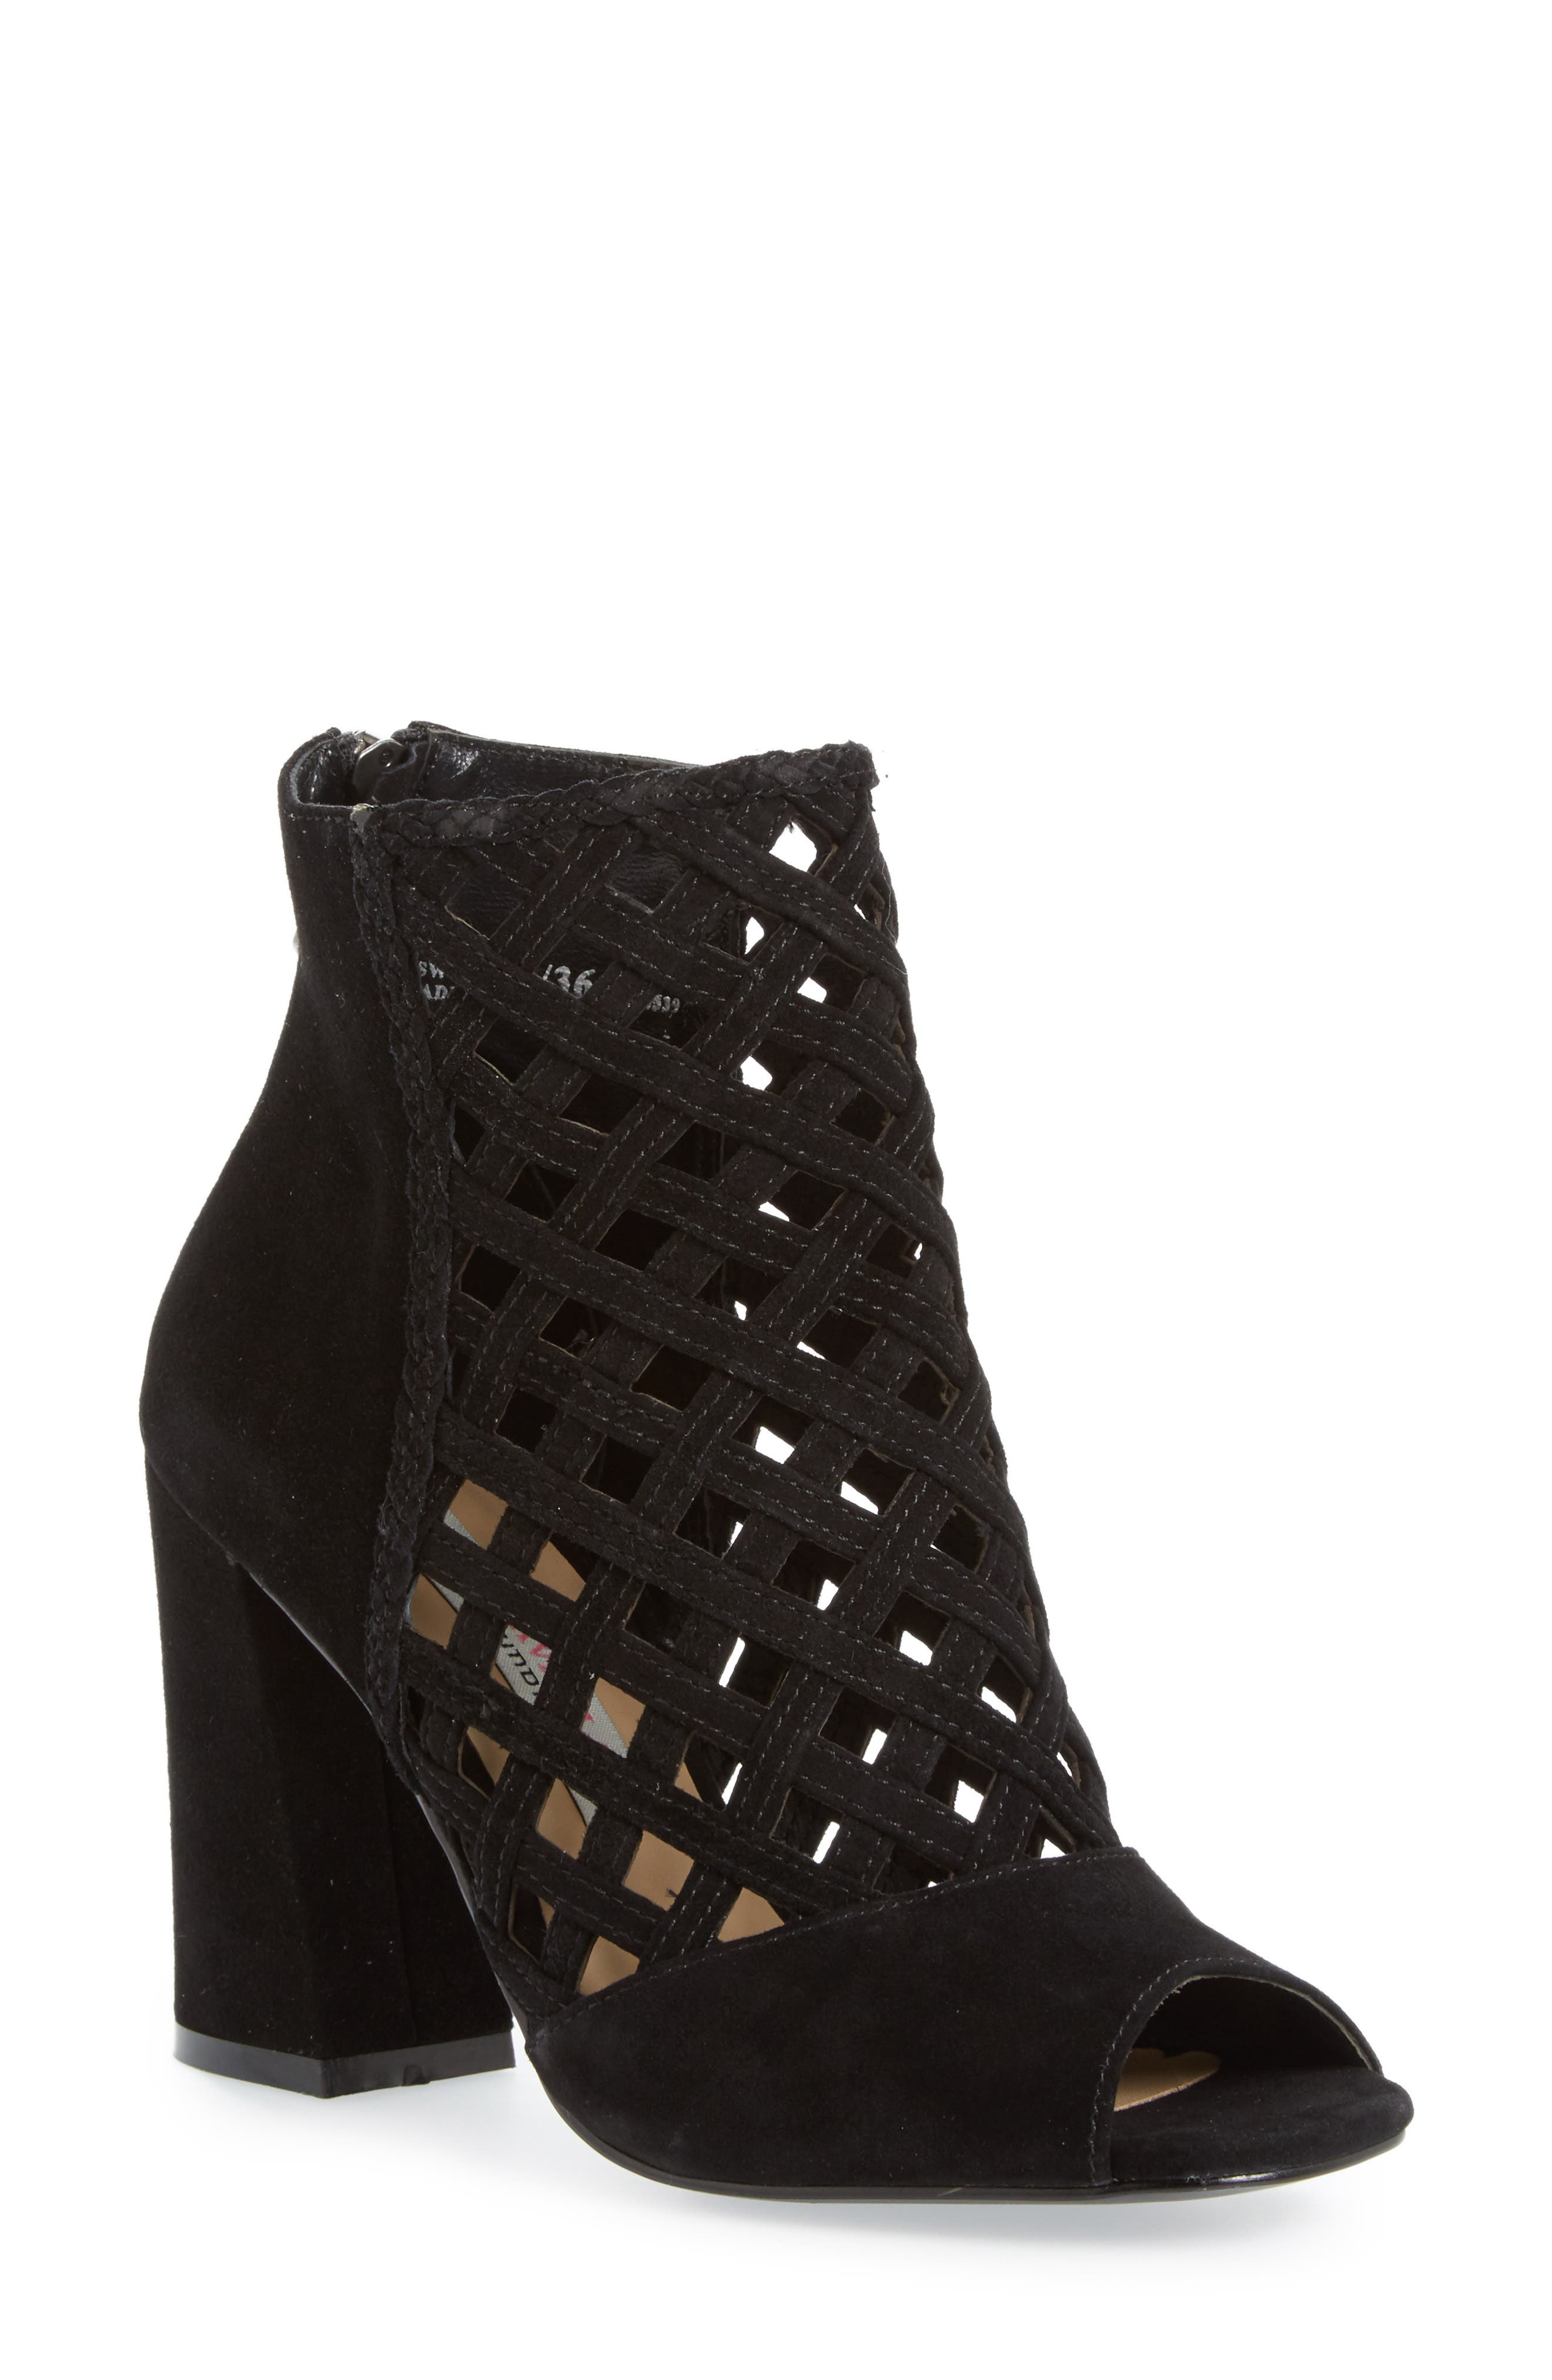 Luxembourg Cage Peep Toe Bootie,                             Main thumbnail 1, color,                             001